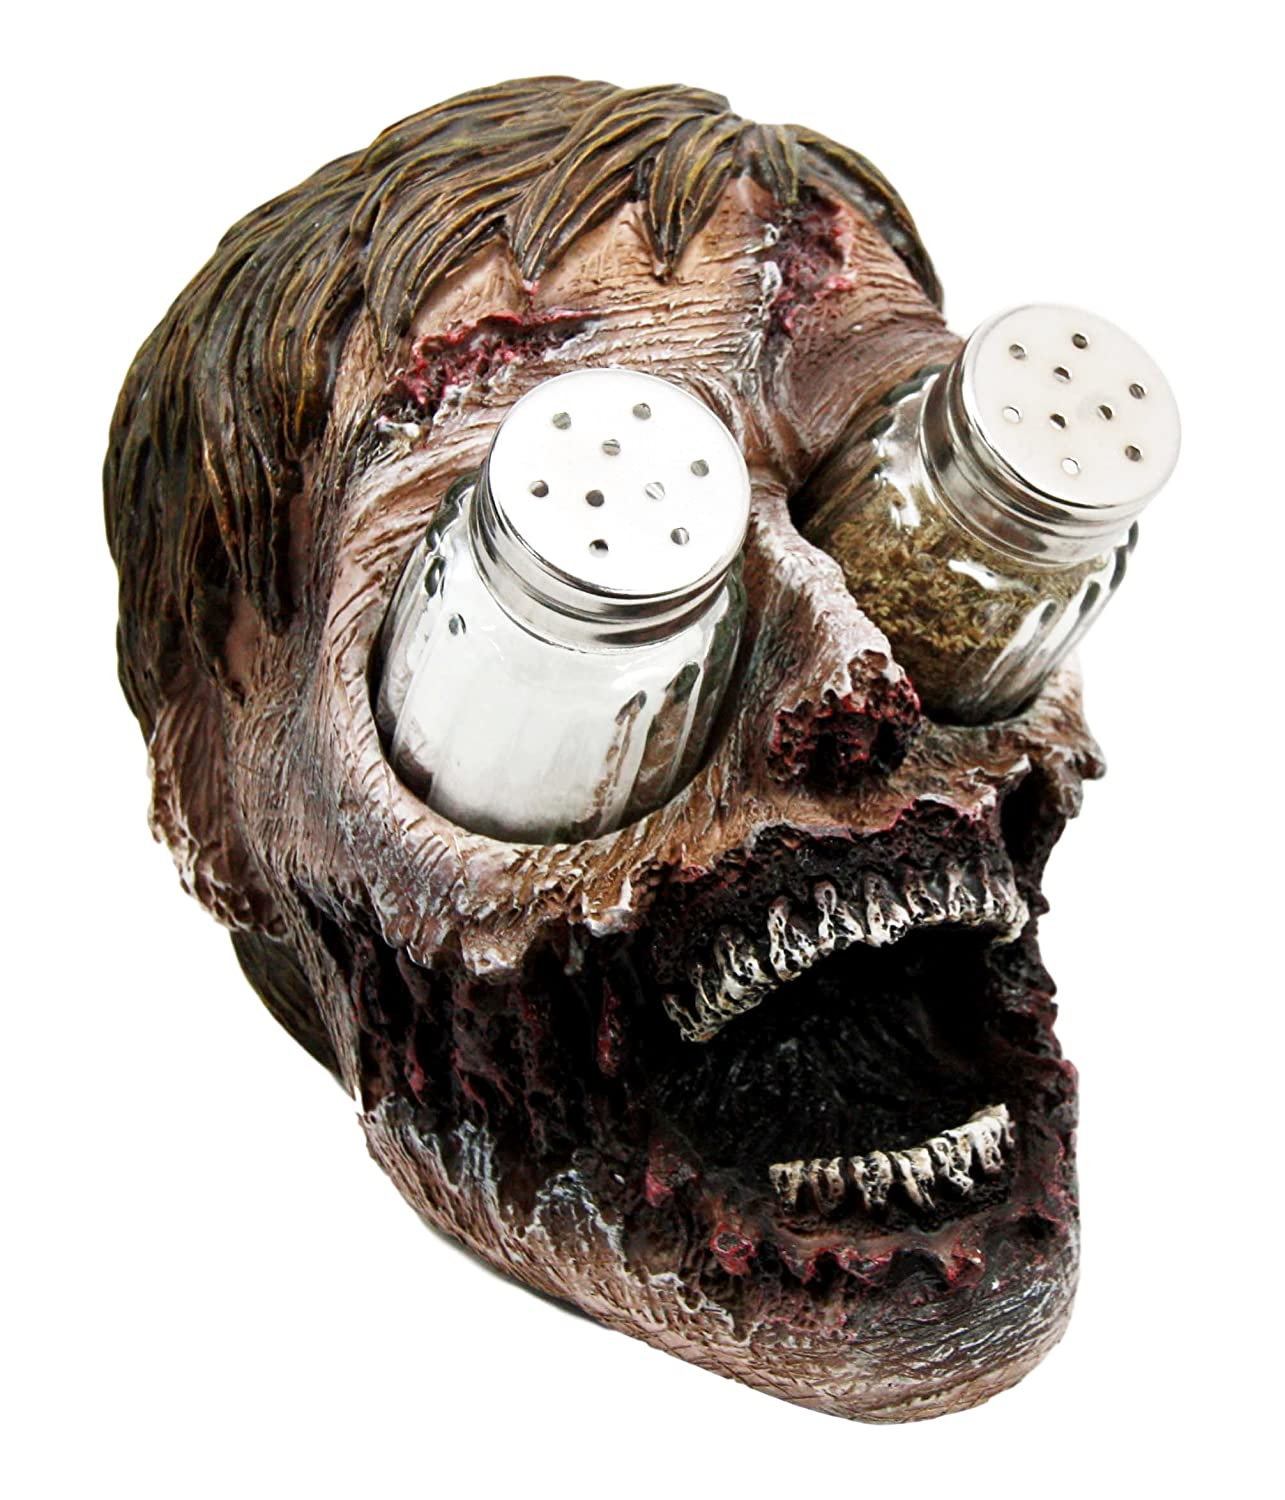 """Ebros Walking Undead Gory Eyeless Zombie Head Salt and Pepper Shakers Holder Figurine Set with Glass Shakers 5.5"""" H Scary Decor Statue"""